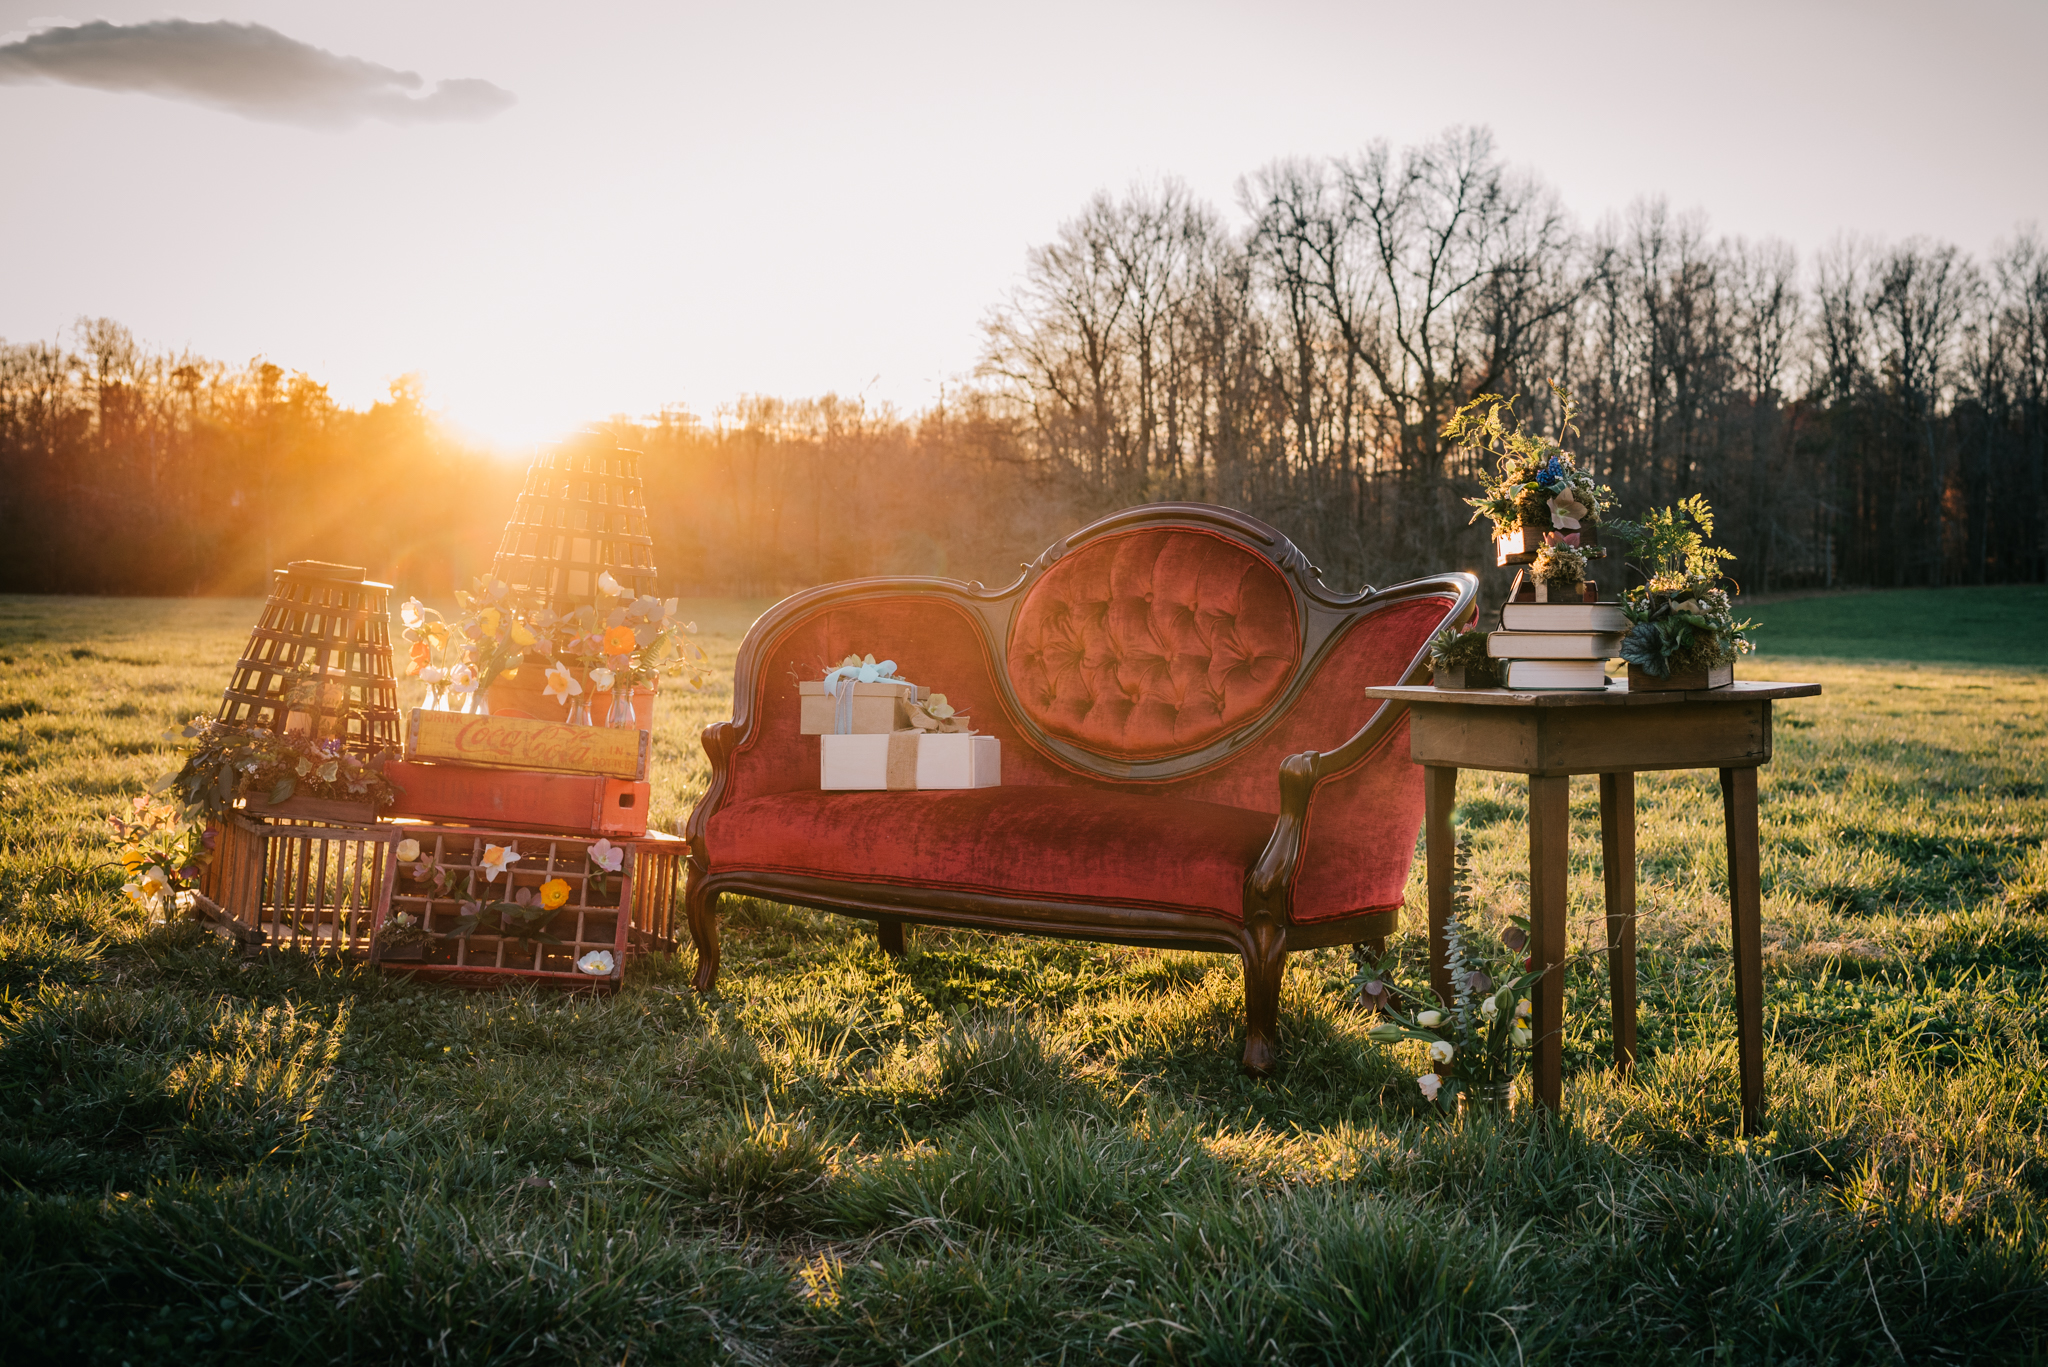 The red couch is adorned with flowers, gifts, and rustic decor while in the sunset at the rustic styled engagement session with Rose Trail Images at Windy Hill Farm near Raleigh, NC.